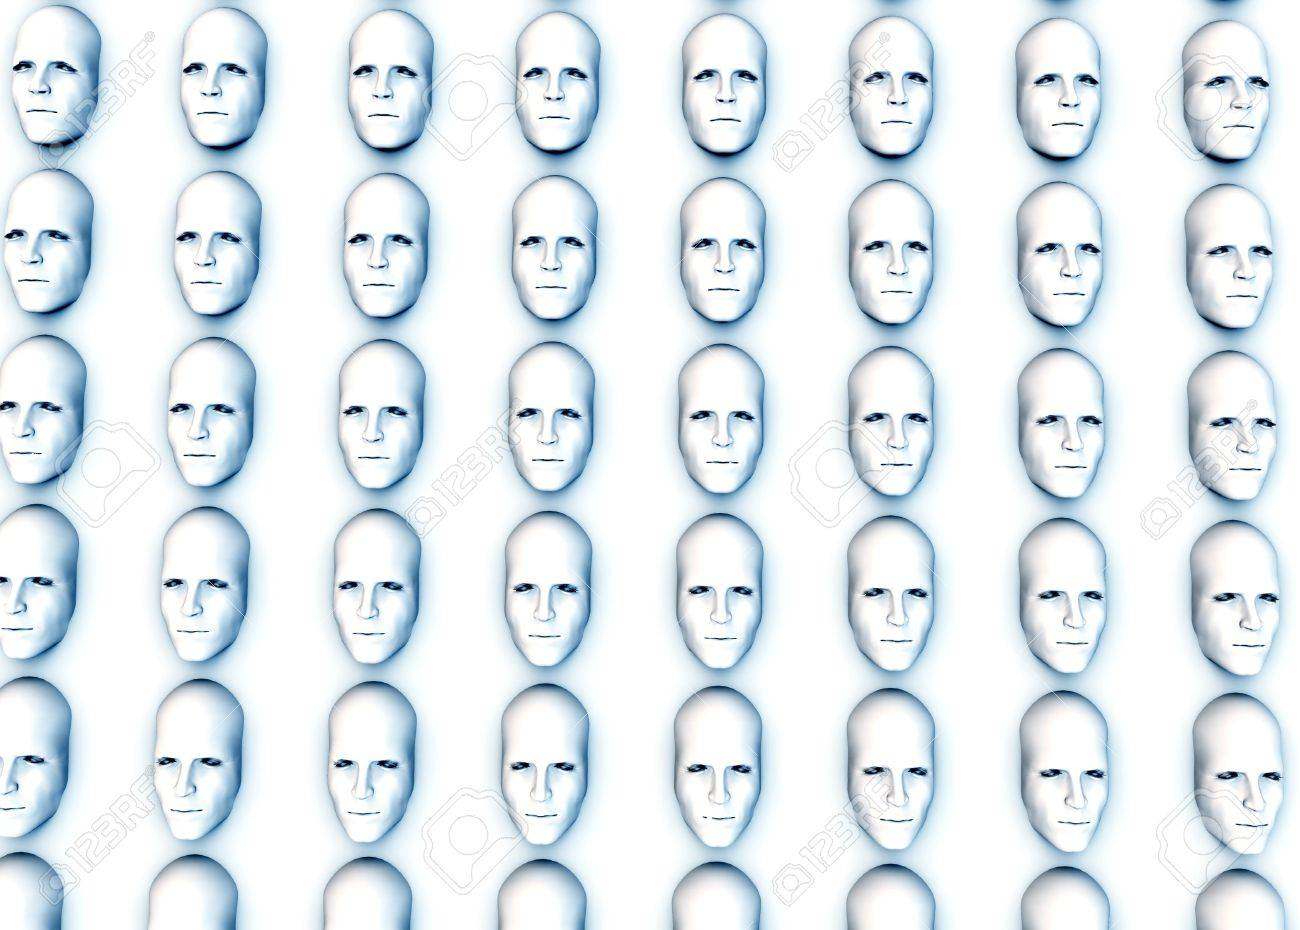 4297568-identical-faces-for-conformity-concepts-.jpg